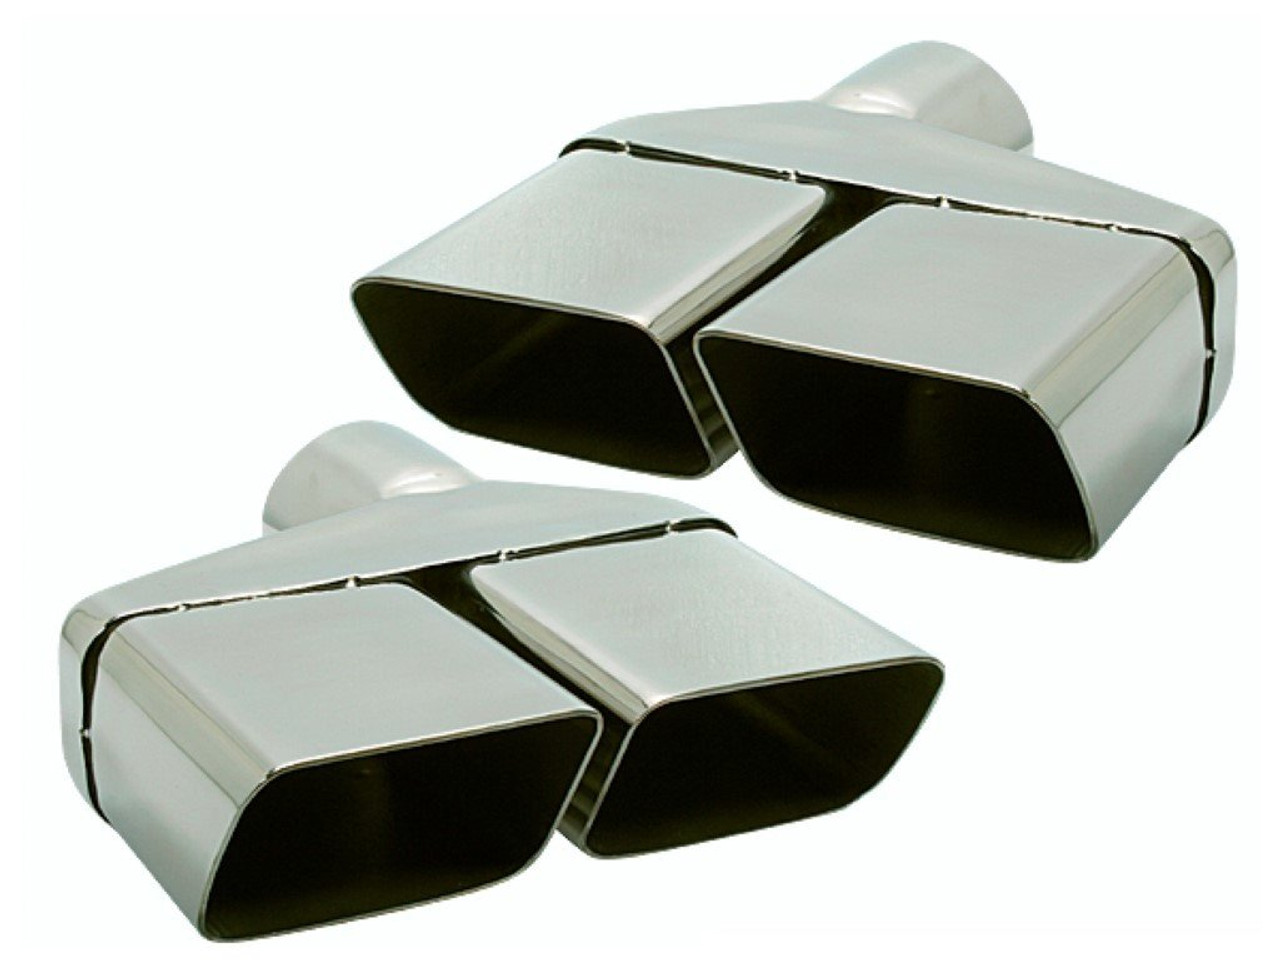 229 s3 mopar dodge e body challenger 3 inches stainless exhaust tips